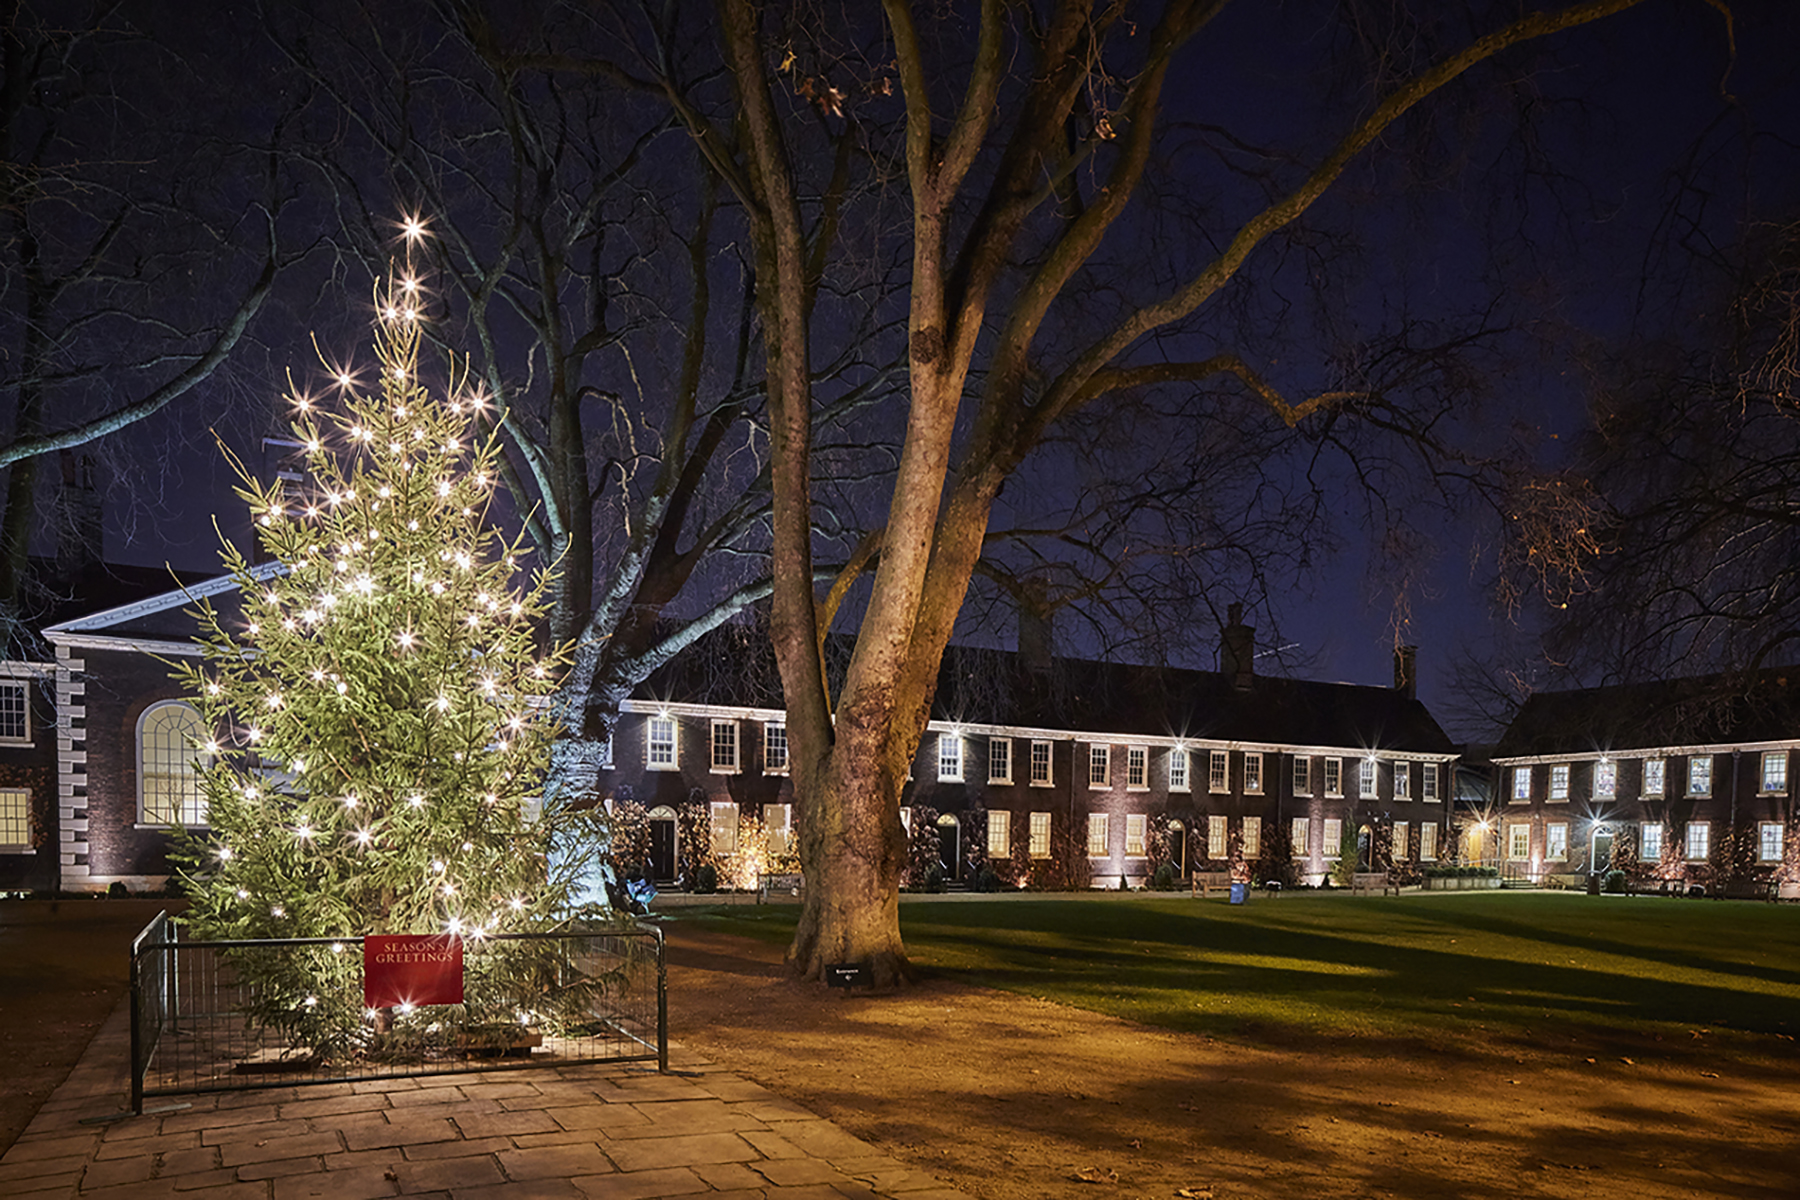 Exterior of the Geffrye Museum at Christmas.3.credit Hannah Taylor